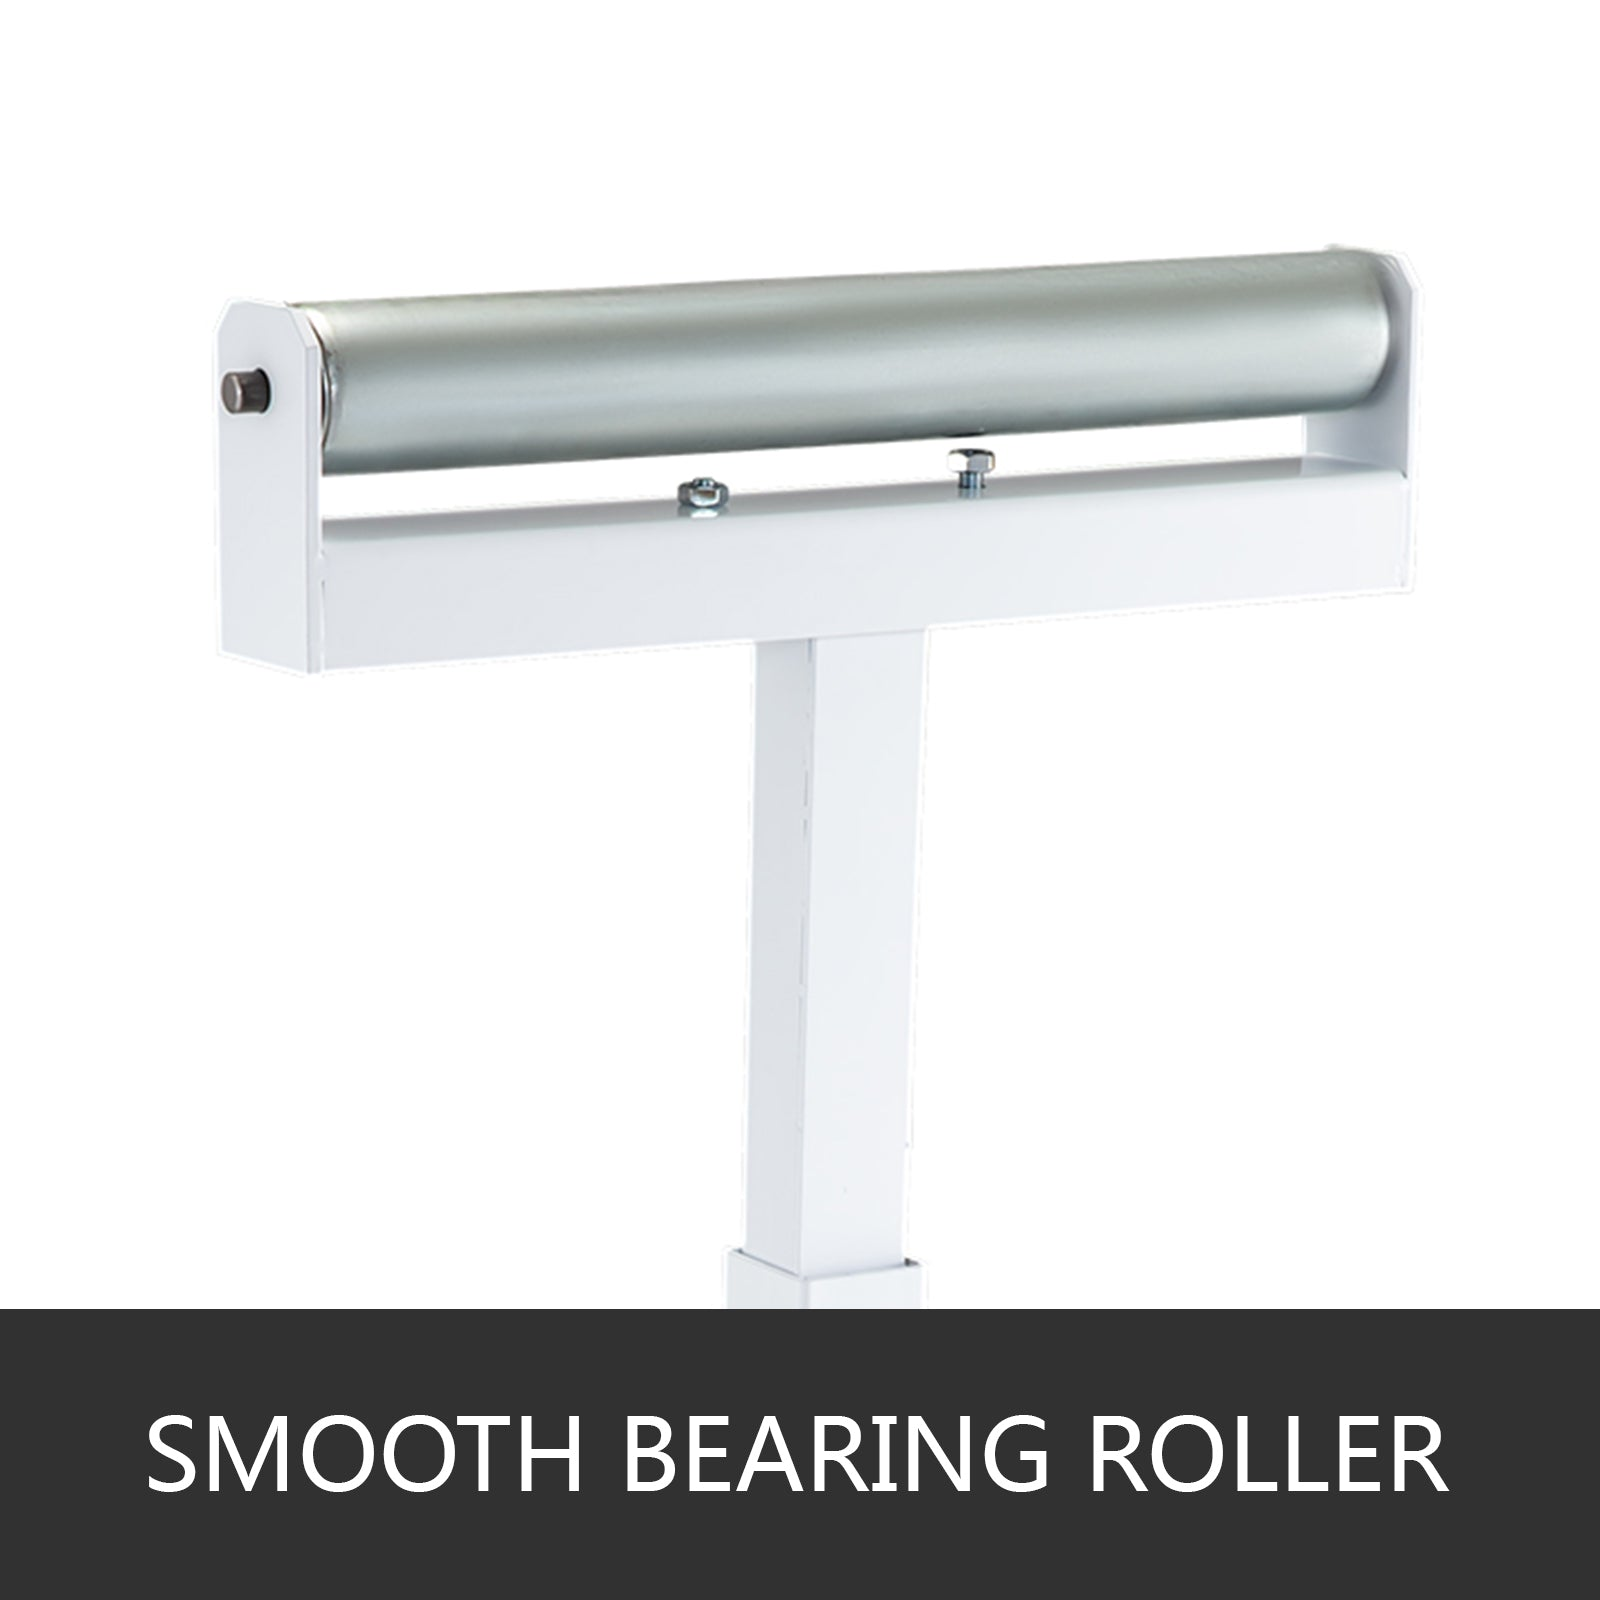 Roller Table Tools Stand With Adjustable Wedge Lock And Non-skid Casters